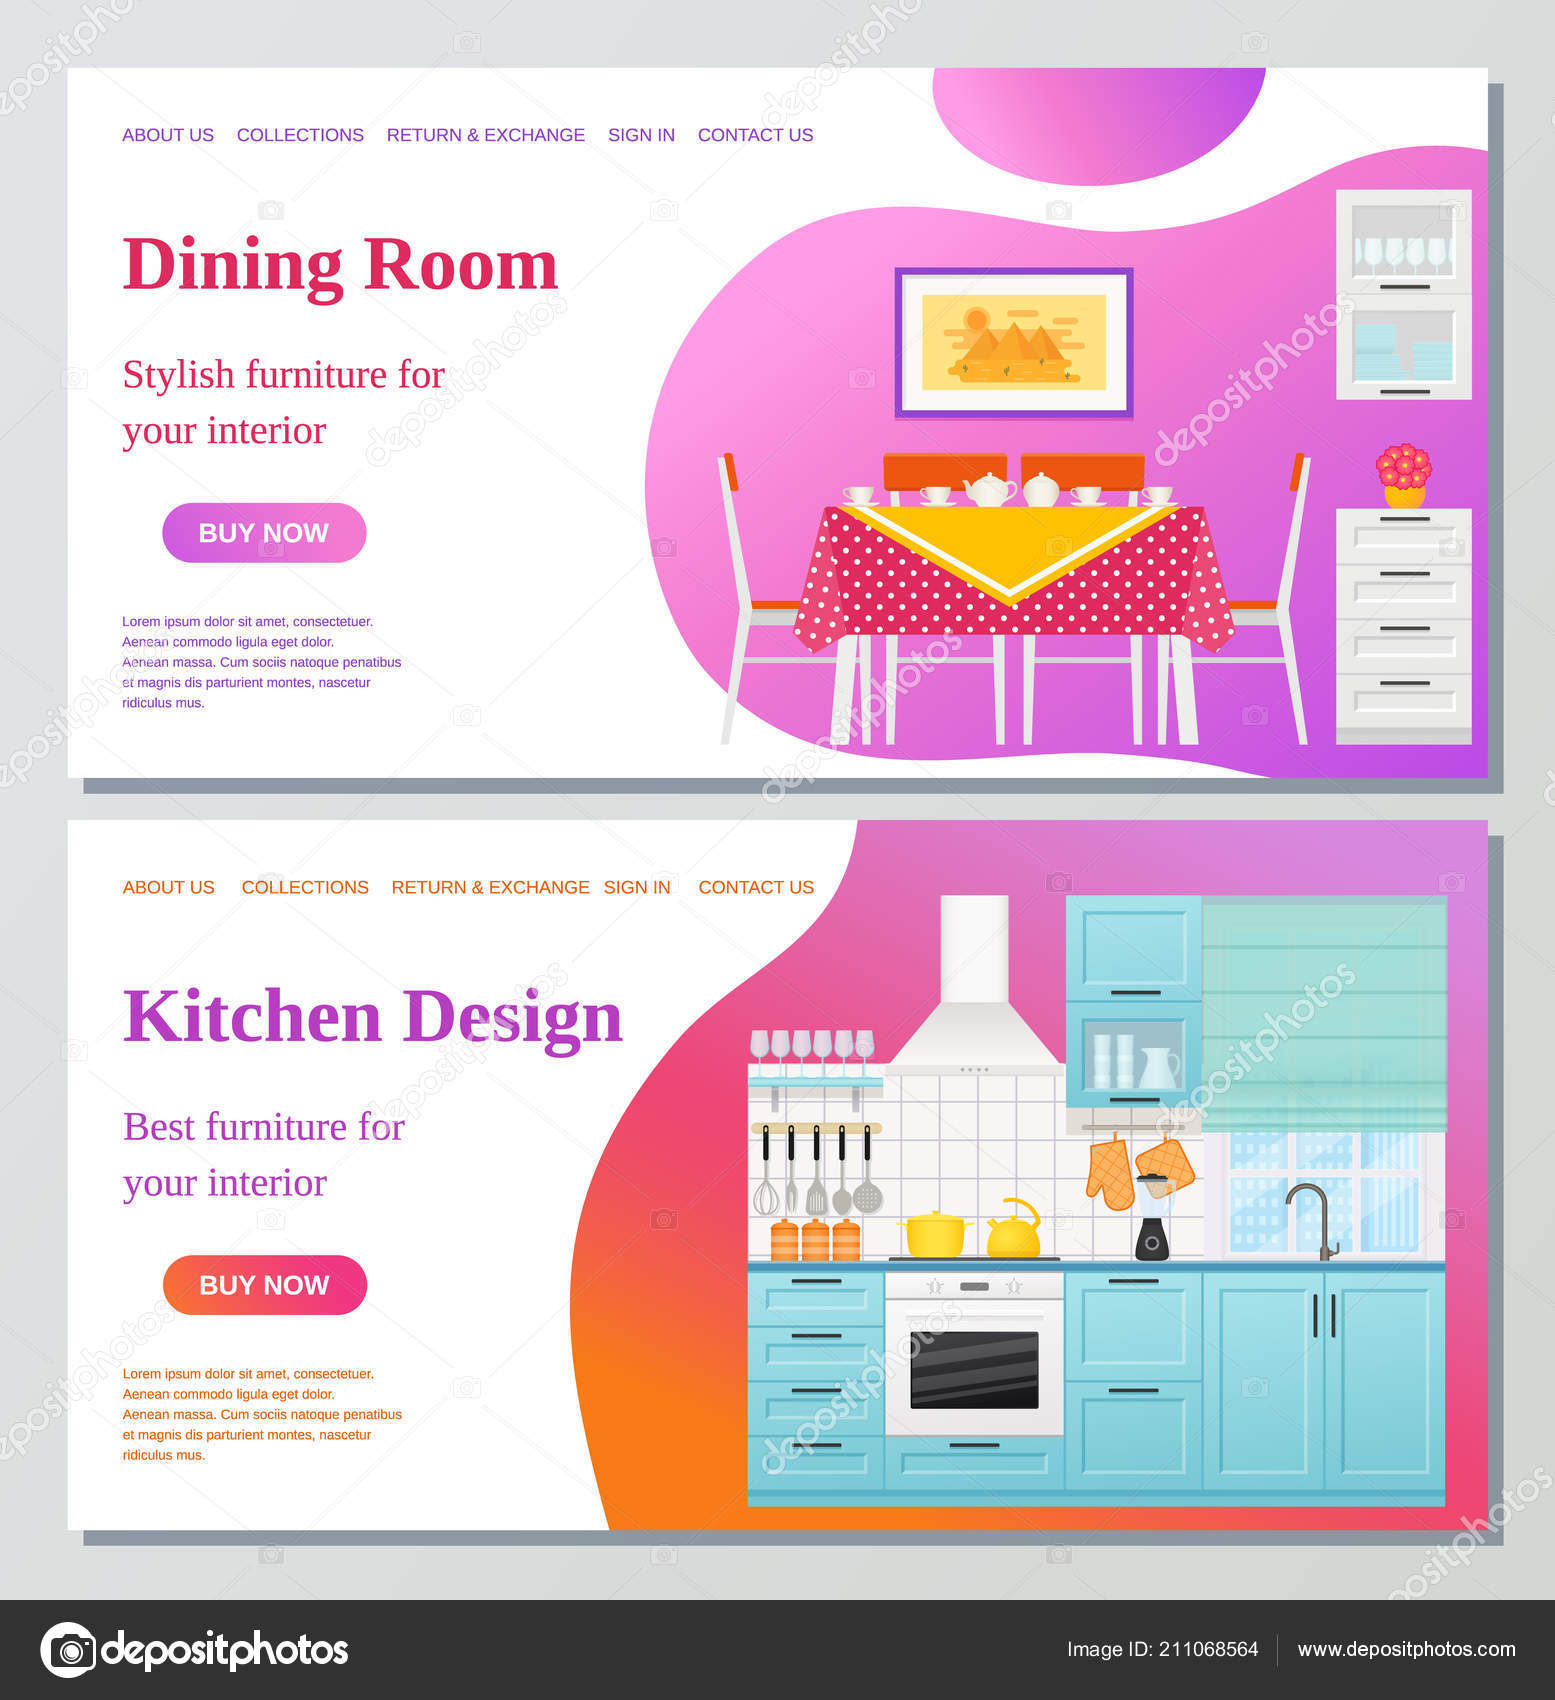 Kitchen Dining Room Web Page Design Templates Vector Furniture Interior Stock